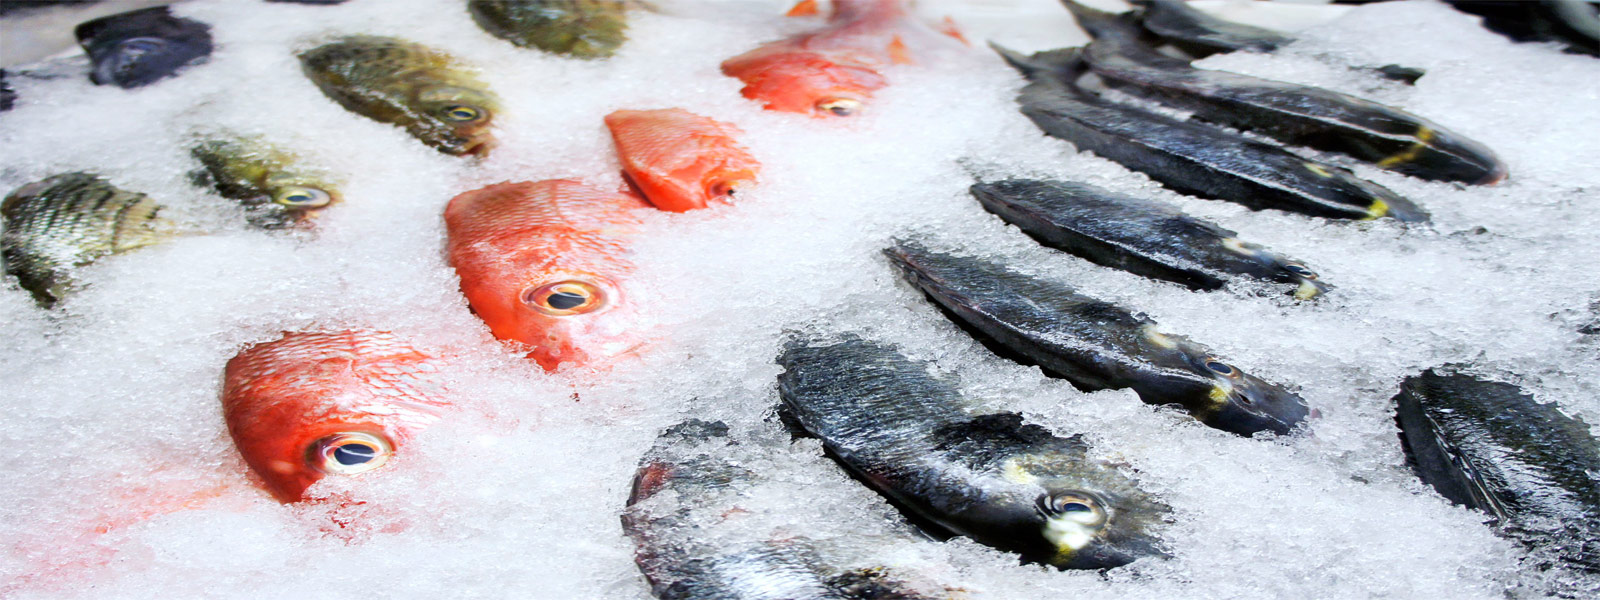 Fish And Meat Cold Storage Frozen Food Cold Room